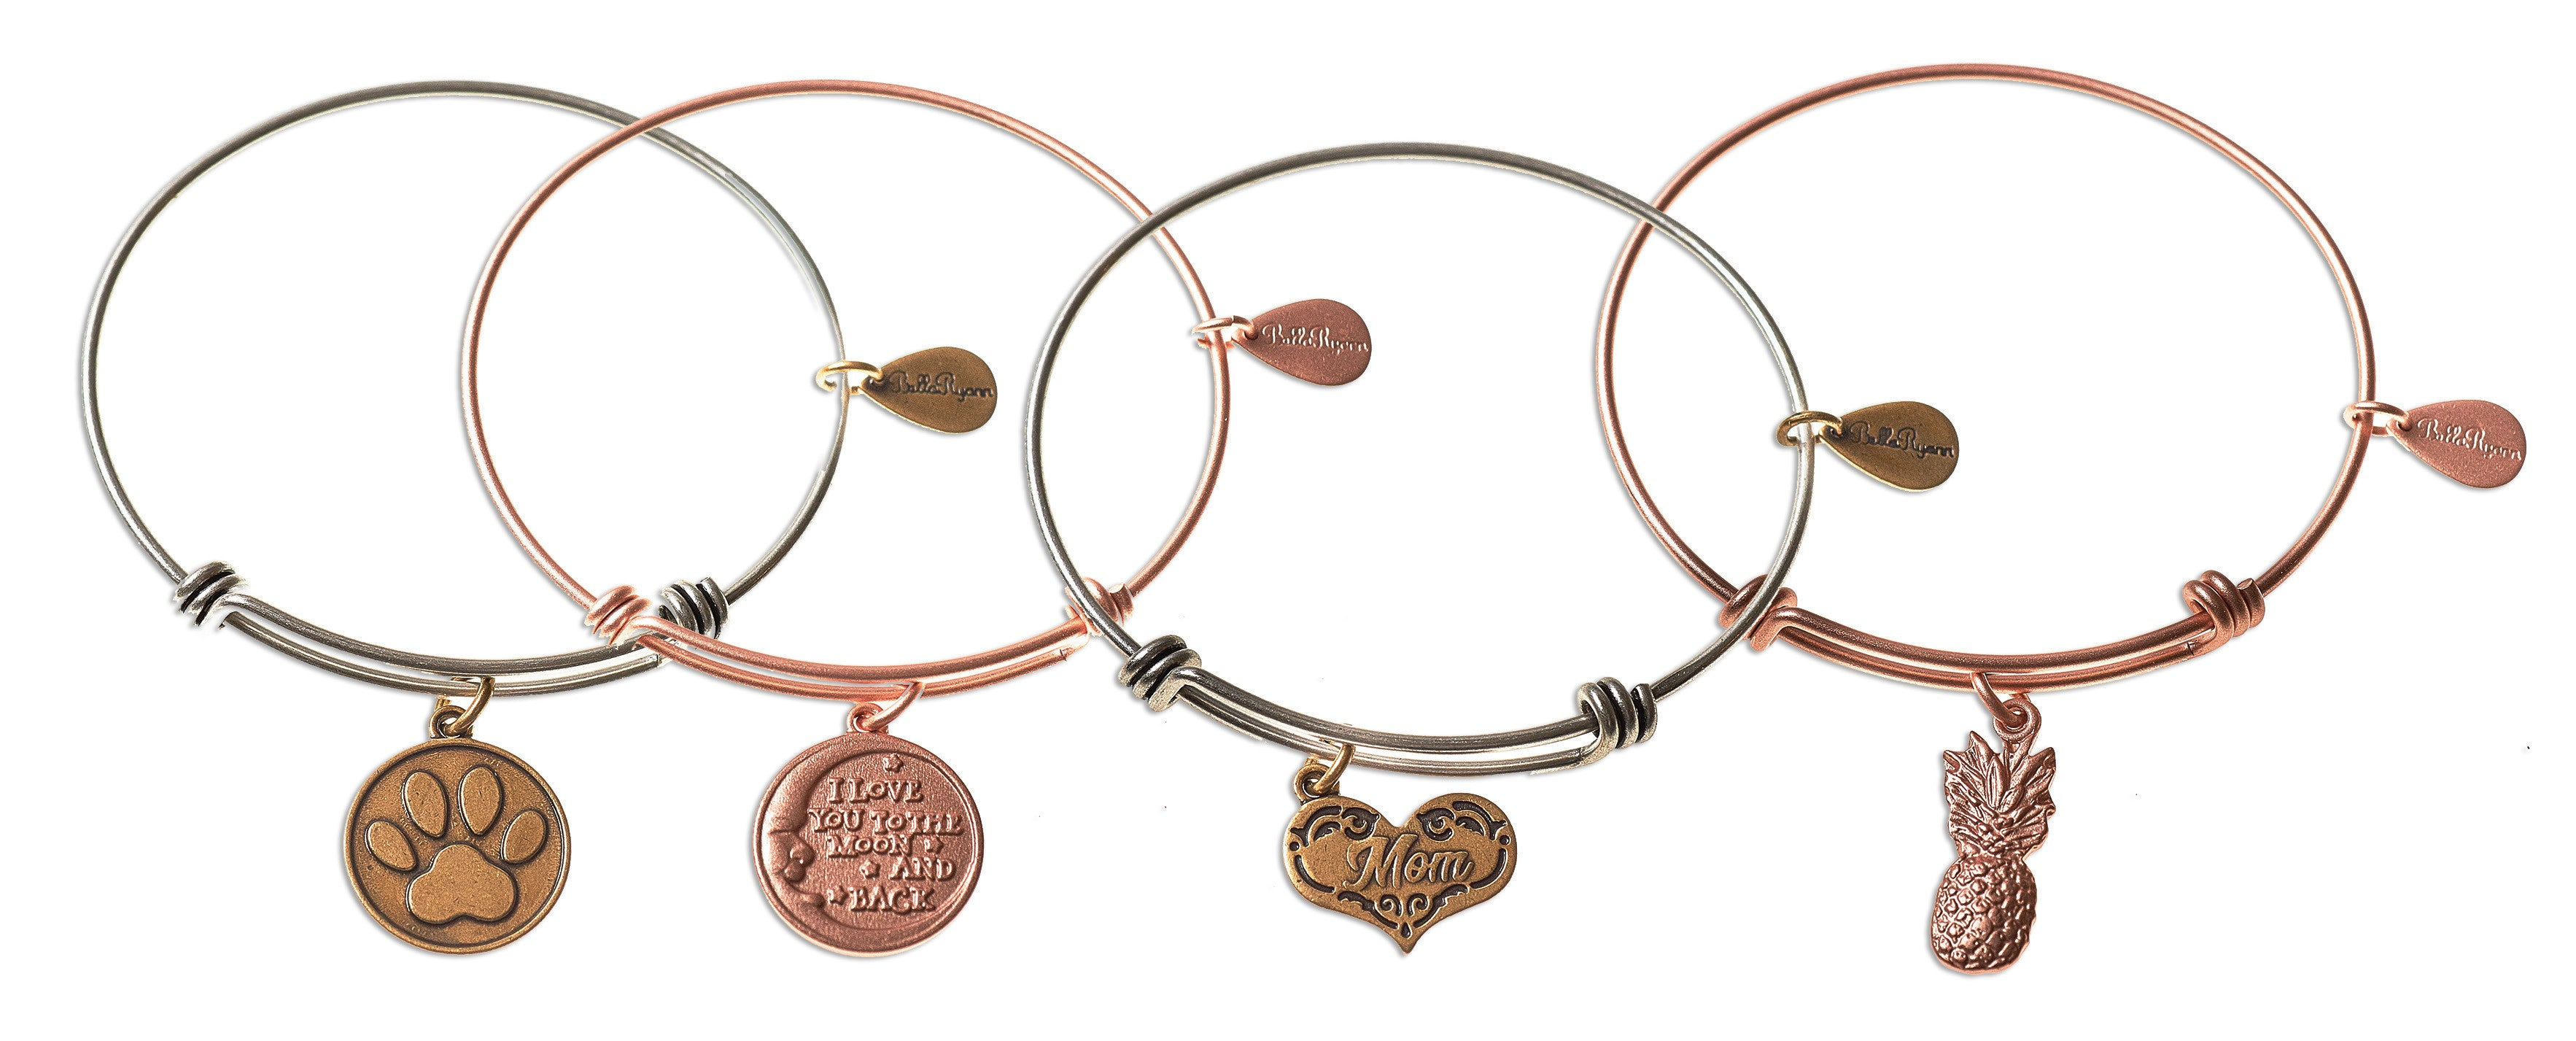 bangles braver winnie hi charms couture you and the ts plated believe with bangle from res accessories pooh gold than disney rose watches truffleshuffle bracelets stackable jewellery